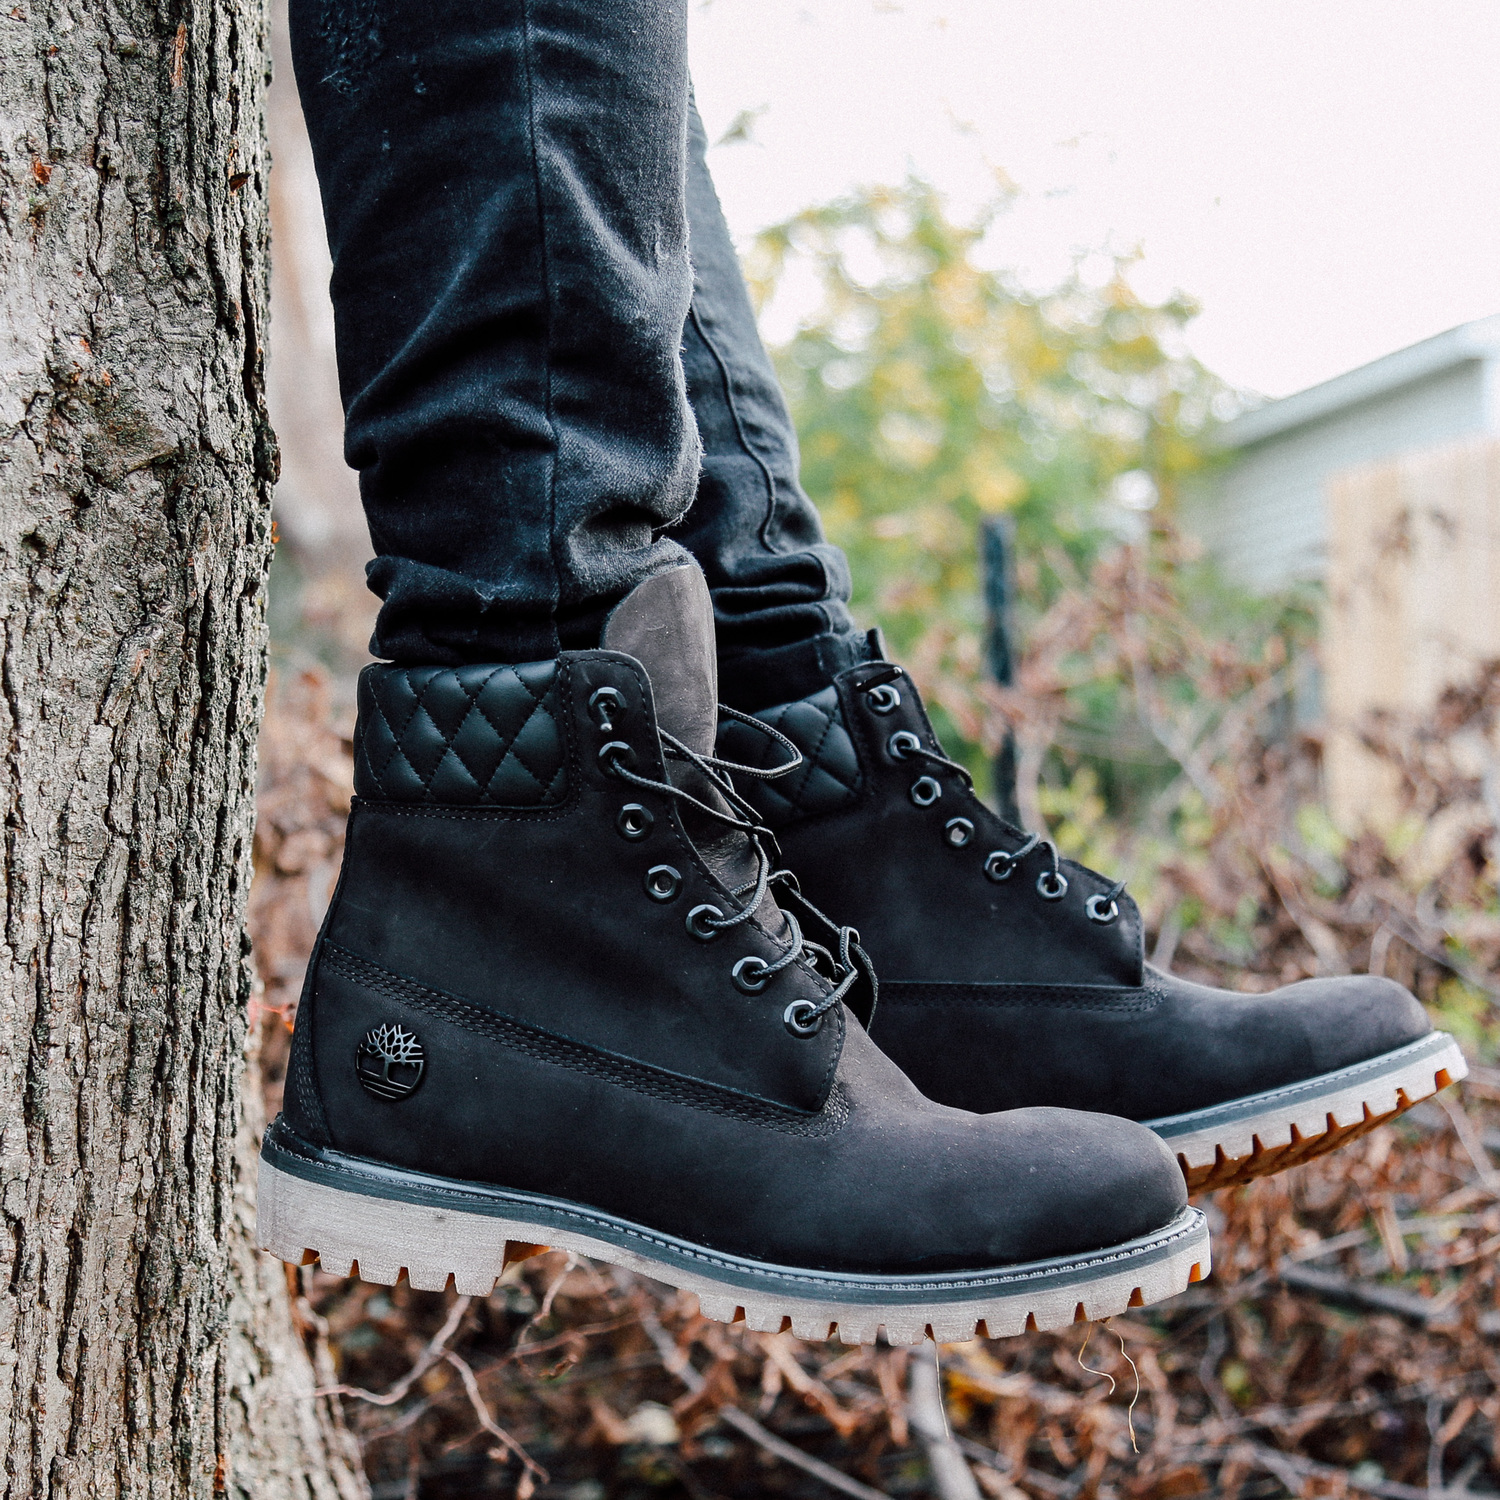 840af37f70b Exclusive Look at the ShoePalace x Timberland 6